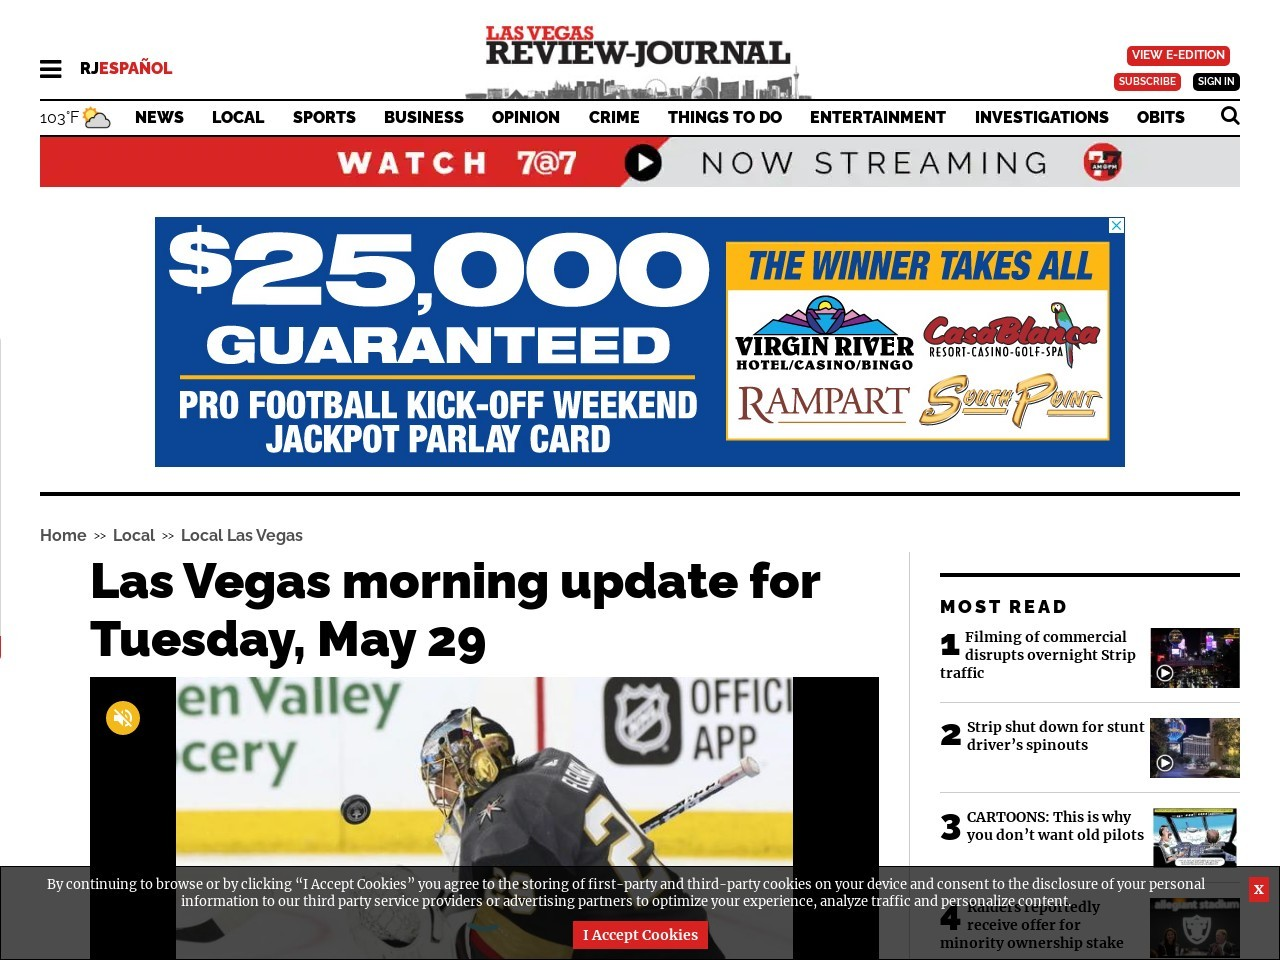 Las Vegas morning update for Tuesday, May 29